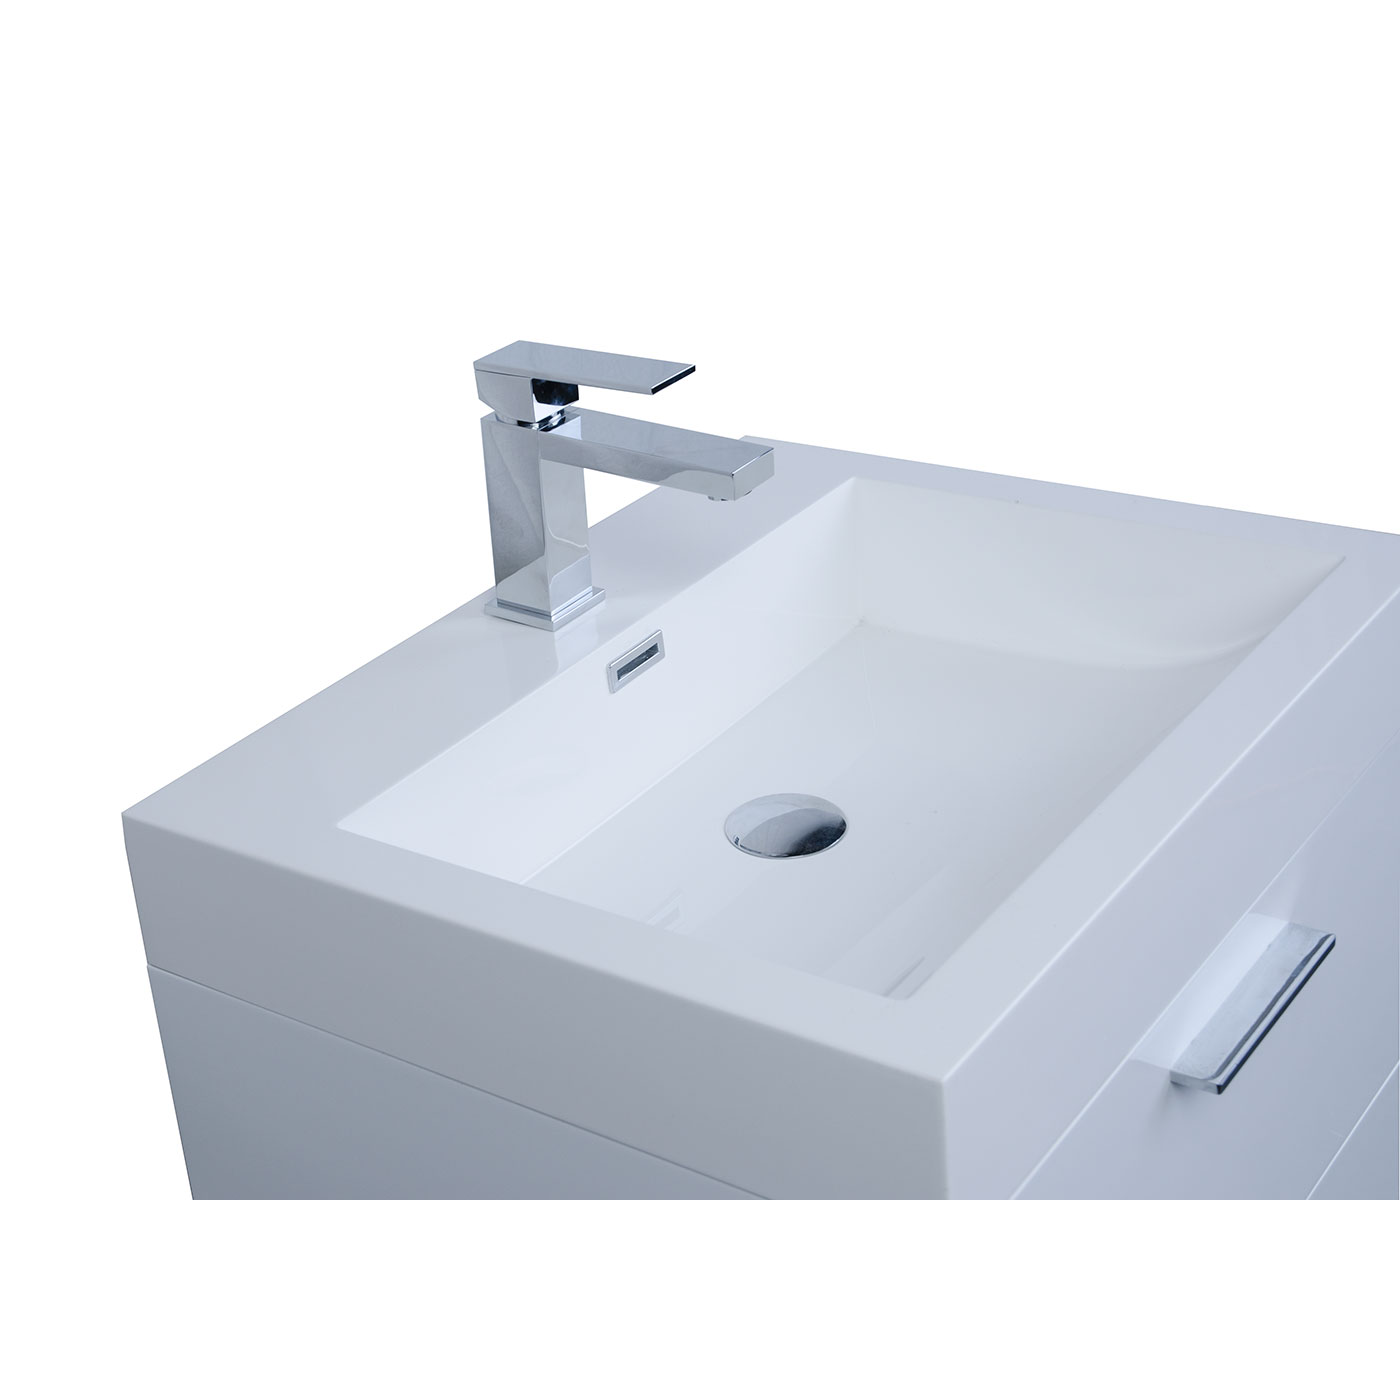 Buy 22.75 In. Single Bathroom Vanity Set High Gloss White TN-T580 ...